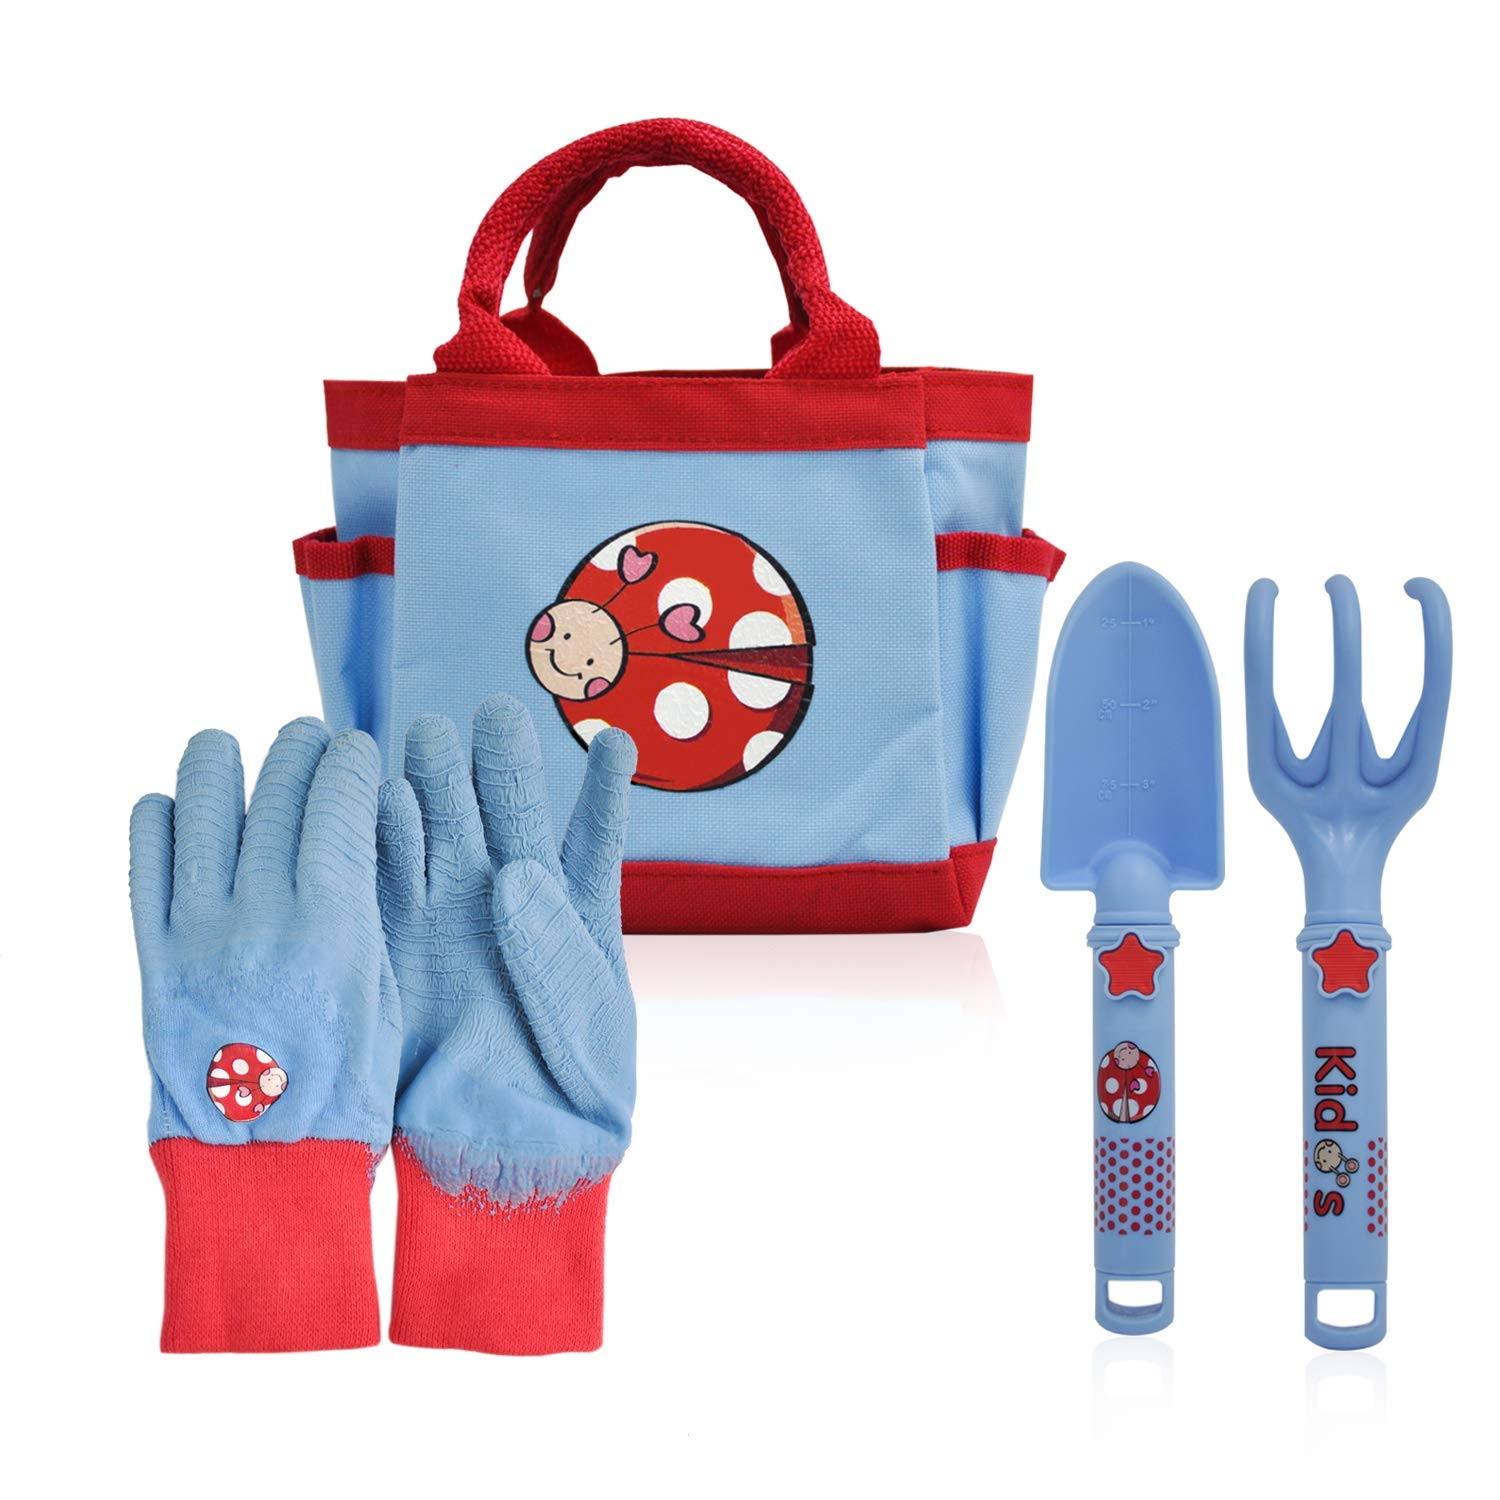 CERBIOR Kids Gardening Tools, 4 Piece Garden Tool Set Kids Gardening Gloves, Rake, Trowel, All in One Gardening Tote